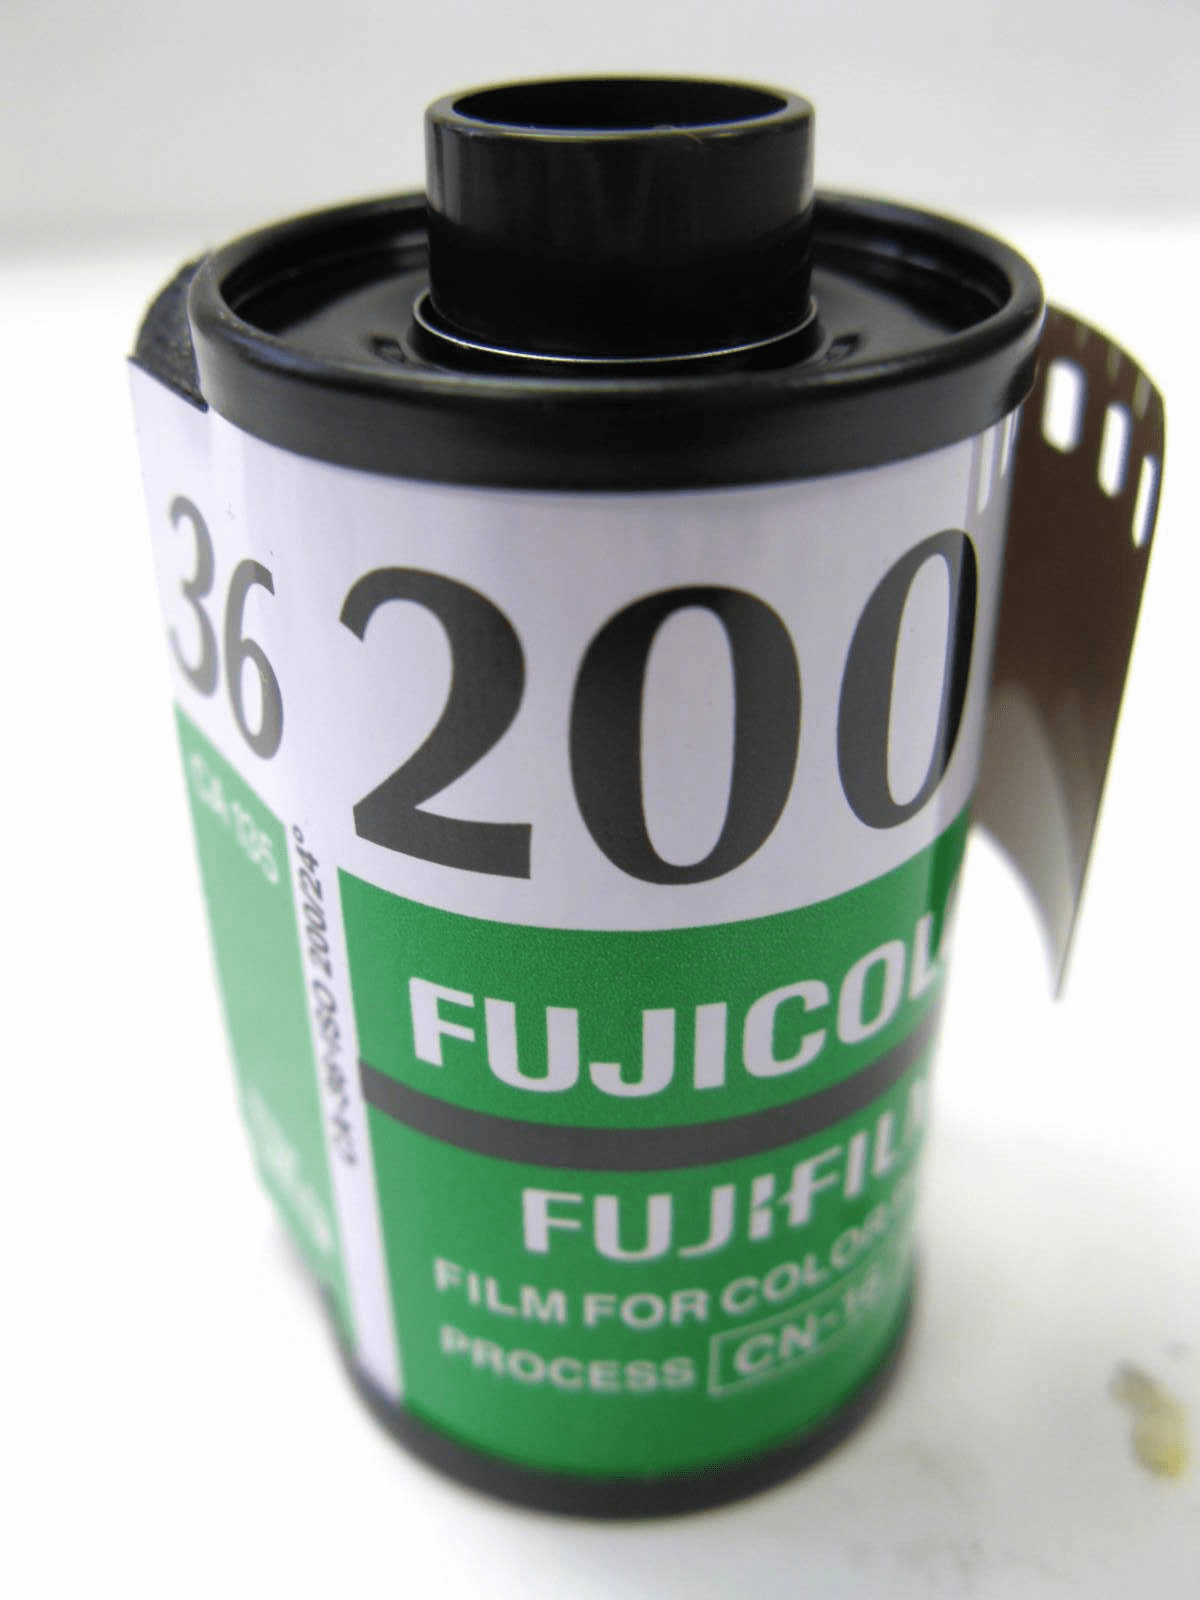 Fujicolor CA 200 Color Print Film 35mm x 36 Exp.